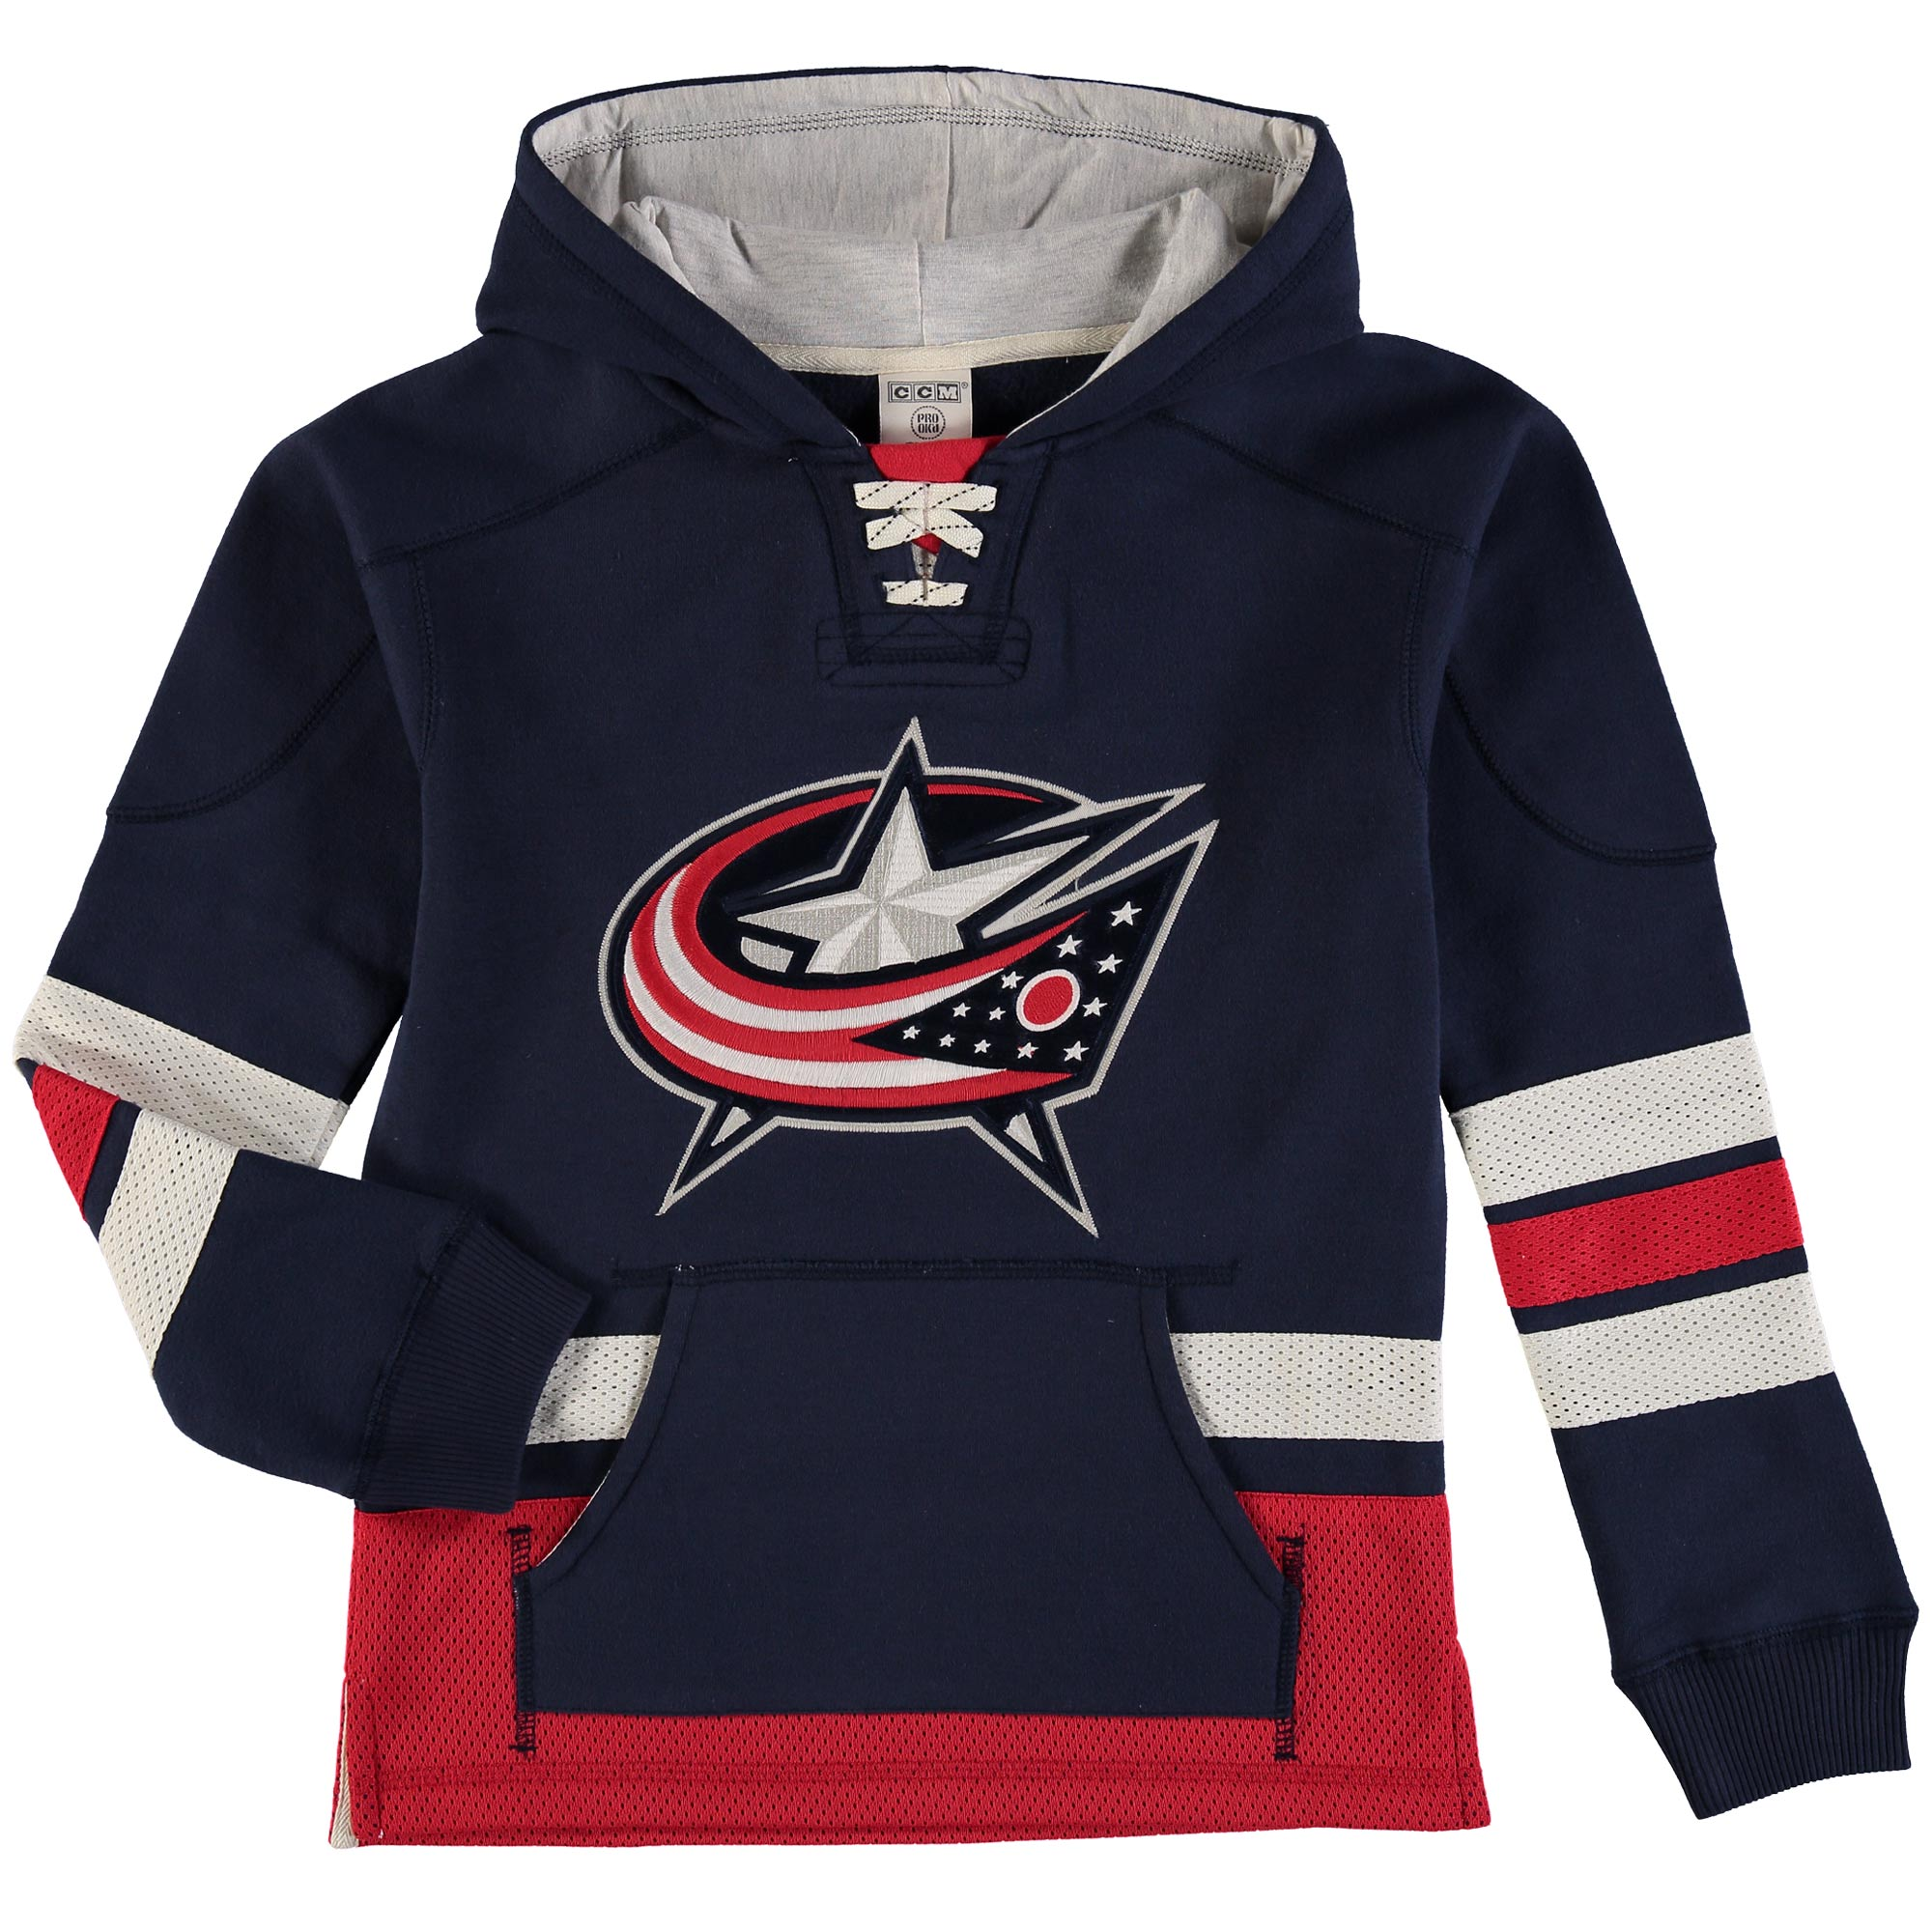 Columbus Blue Jackets Reebok Youth Retro Skate Hoodie Navy by Outerstuff